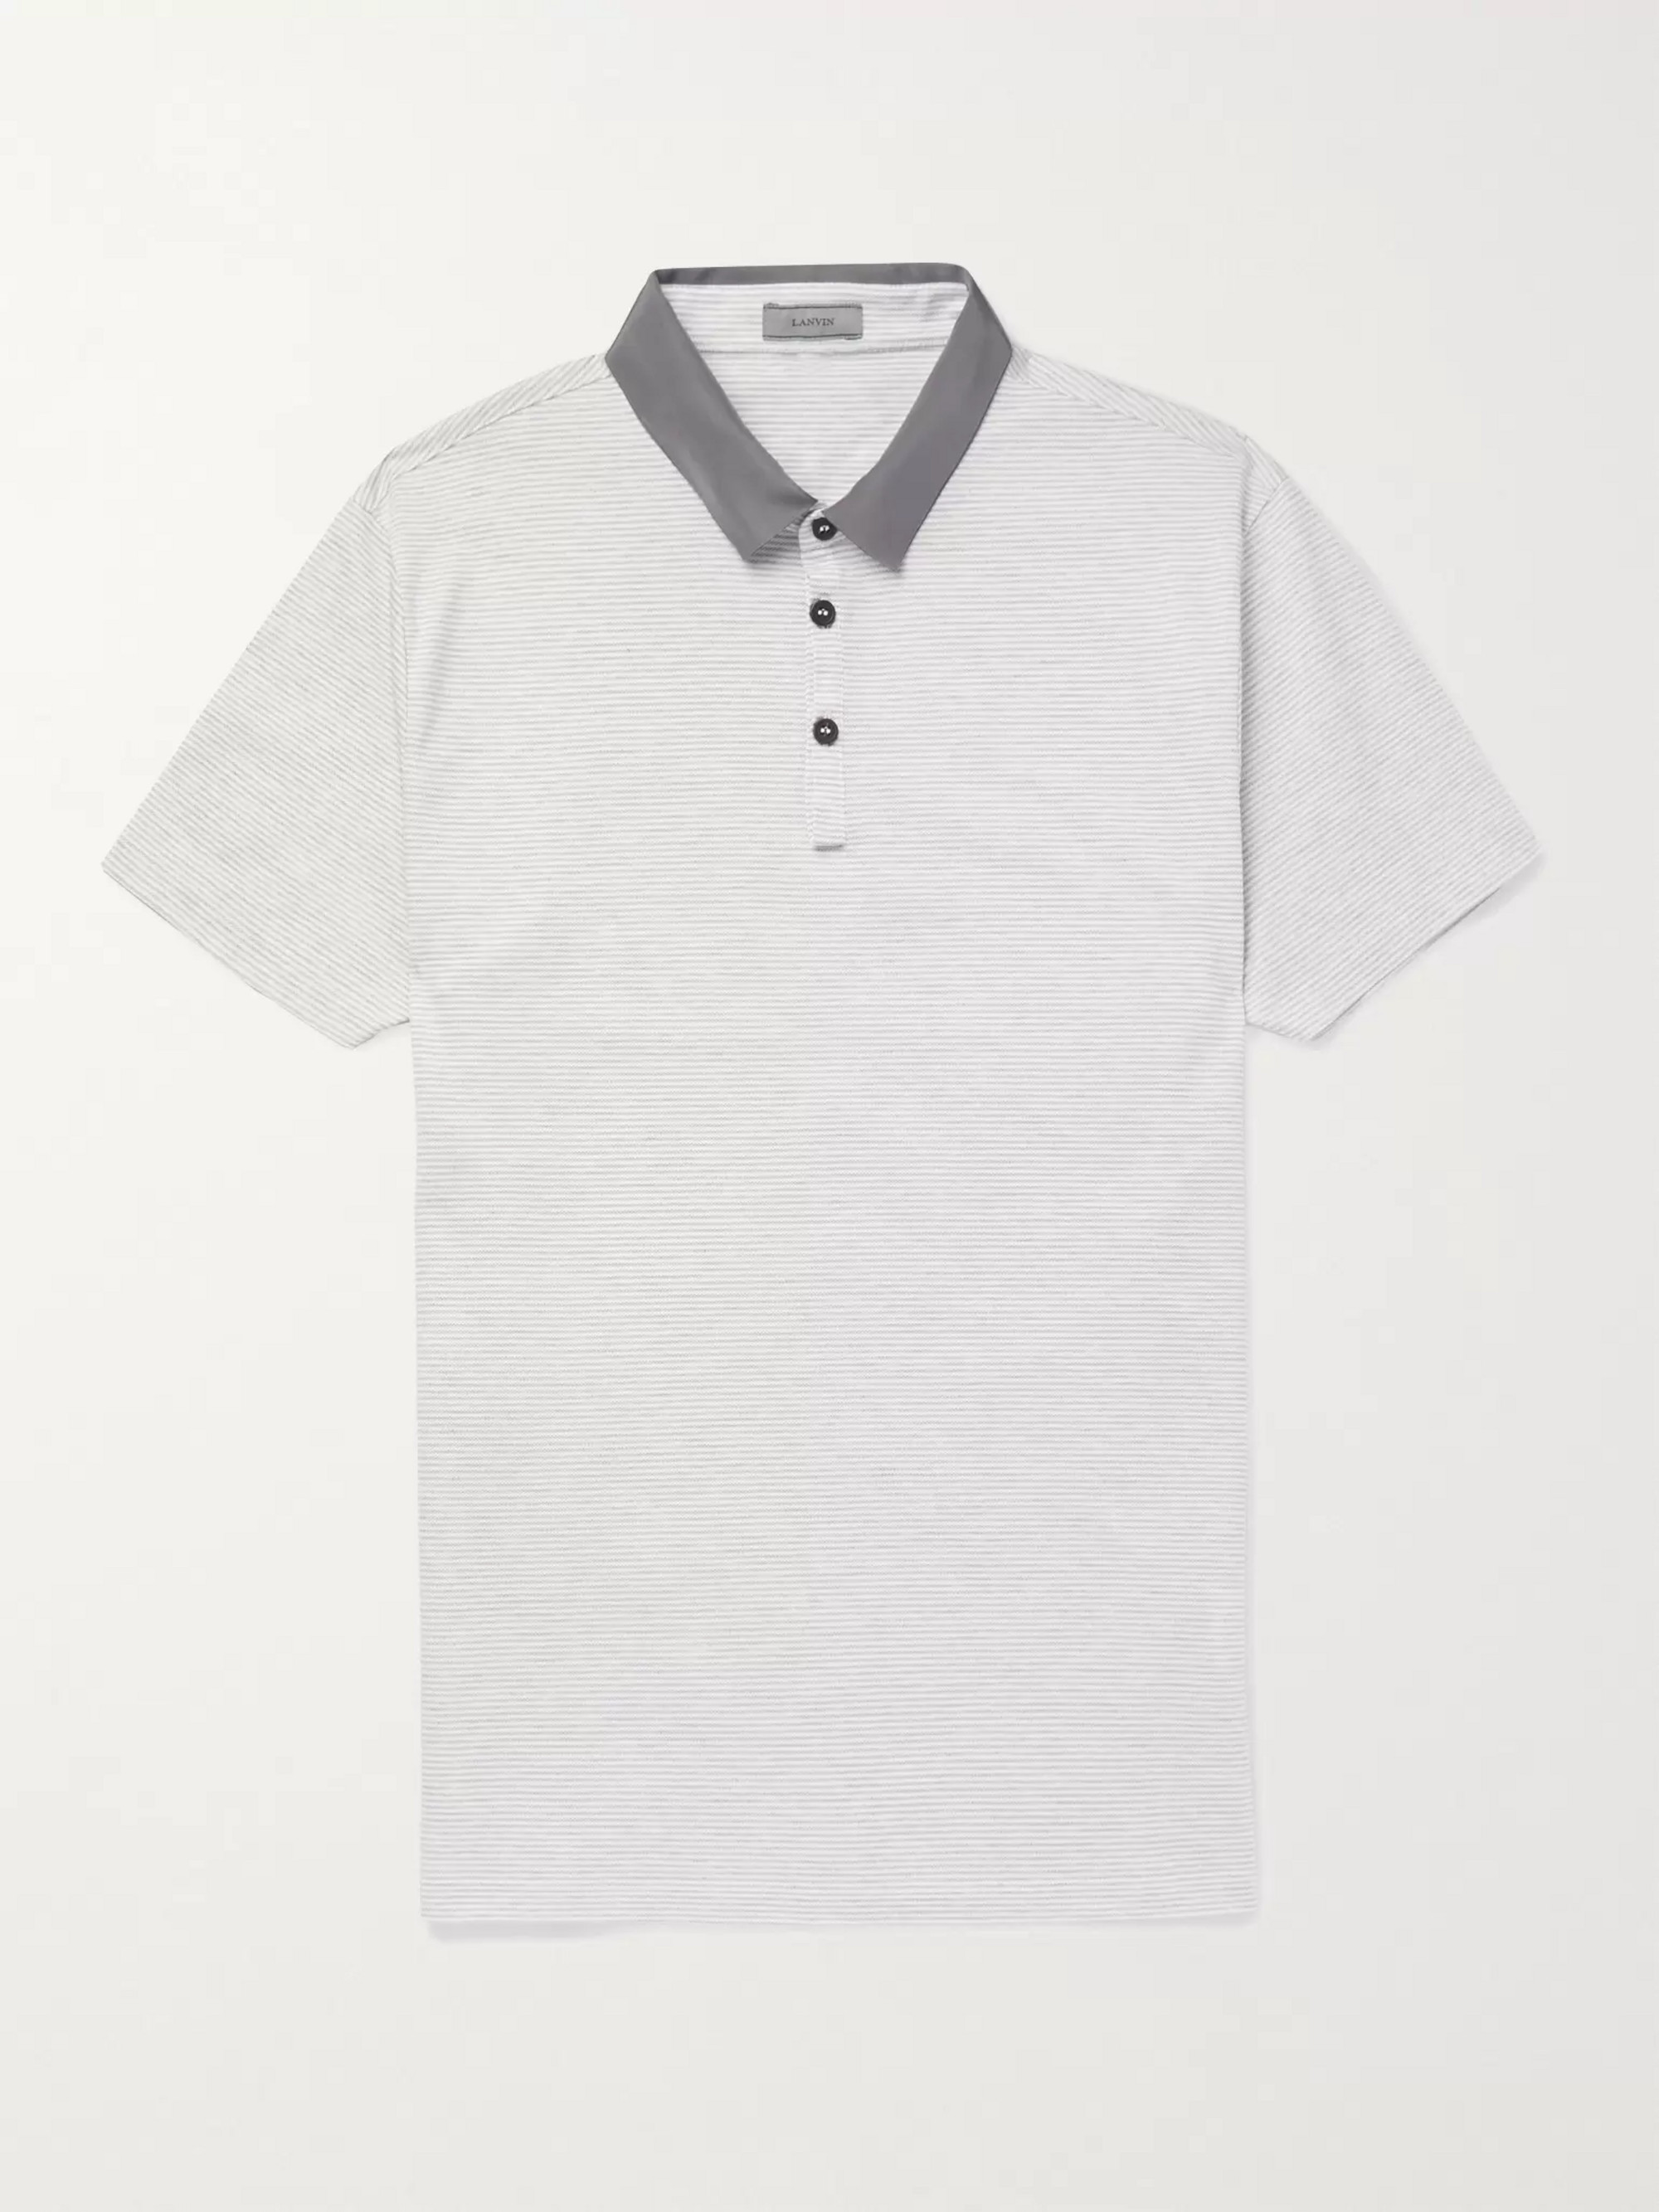 Lanvin Slim-Fit Satin-Trimmed Striped Cotton-Piqué Polo Shirt